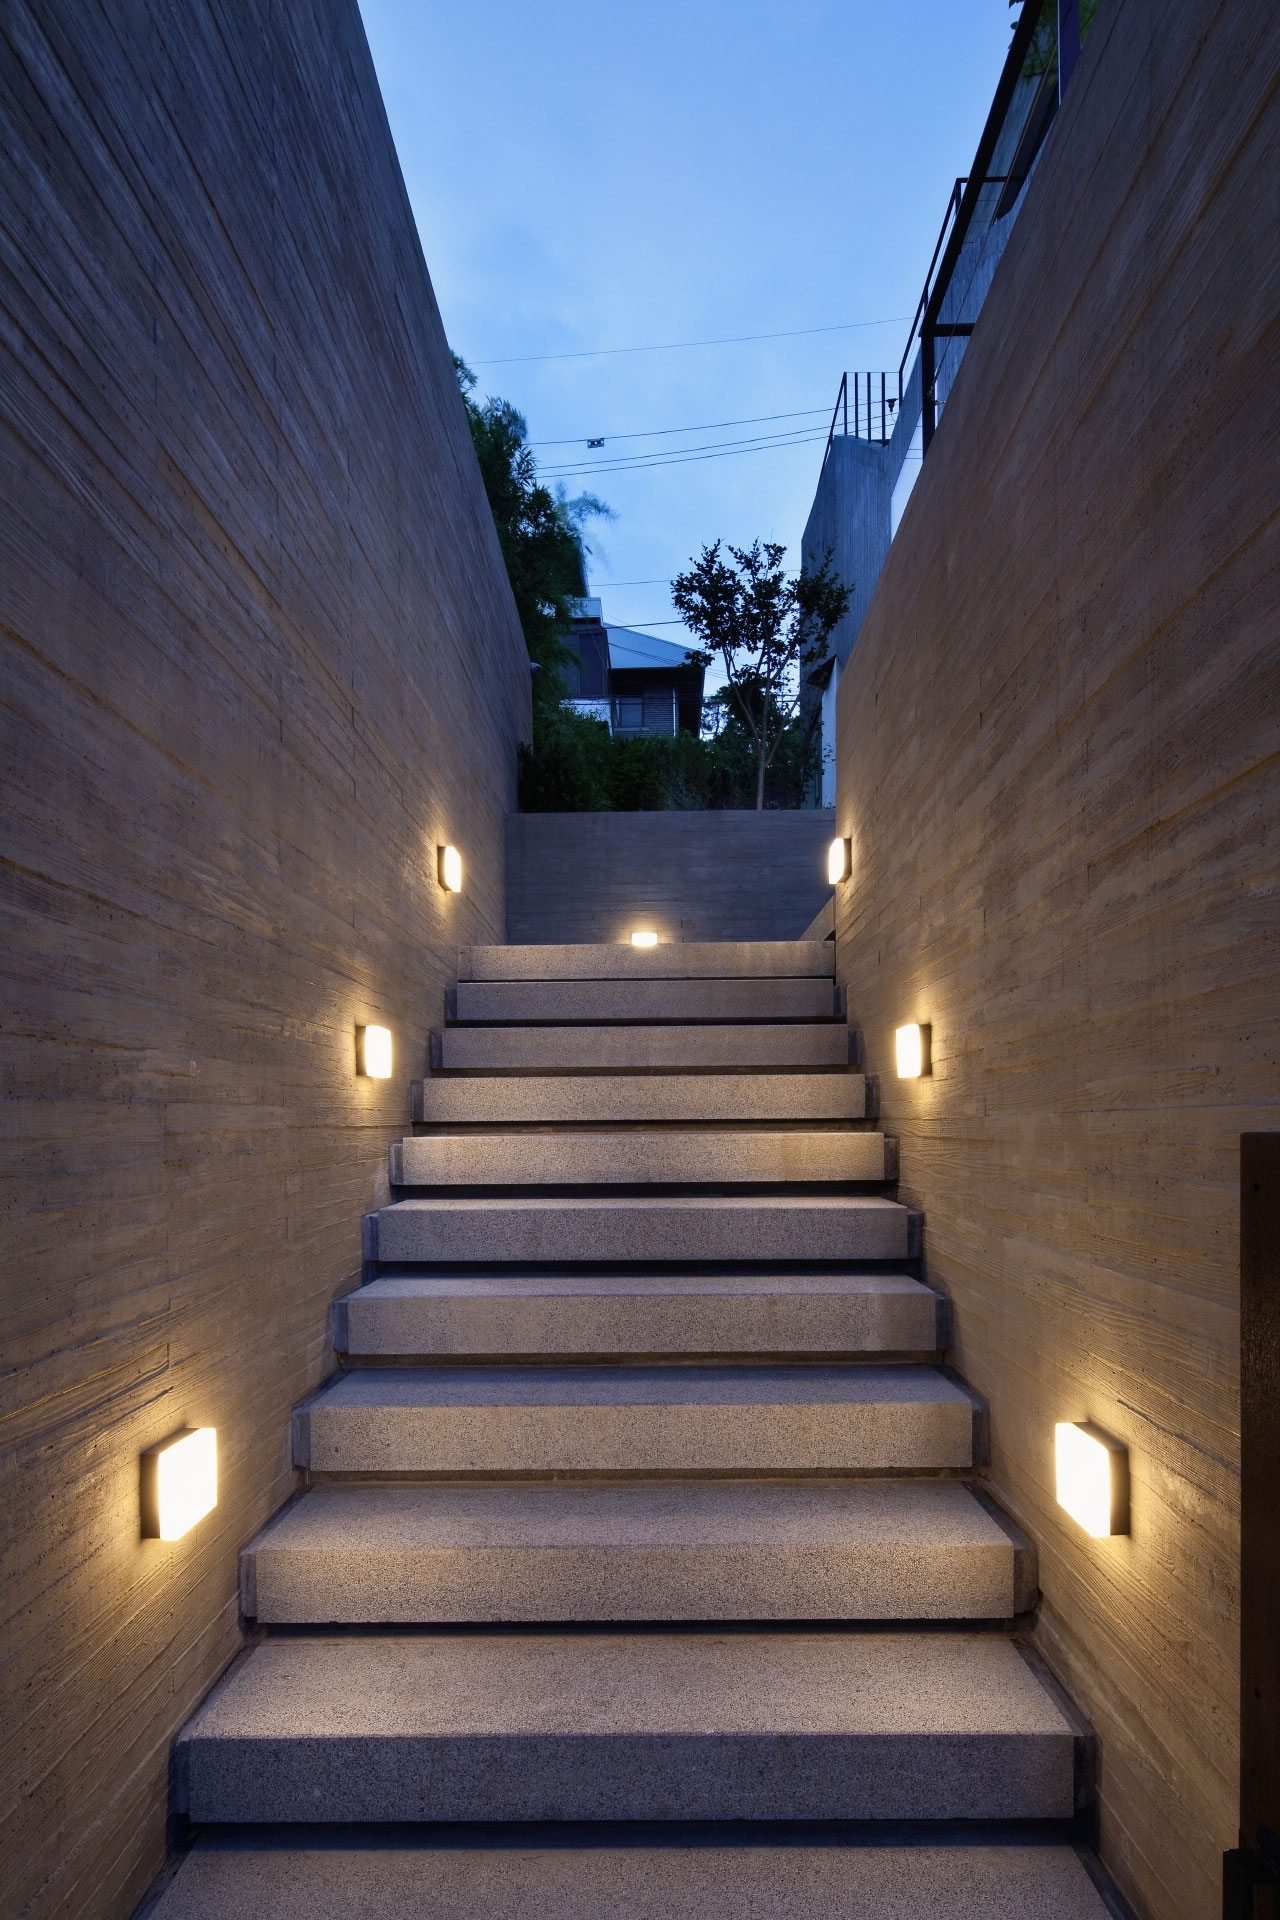 Trend Outdoor Wall Lights For Houses 92 For Your Outdoor Wall With Well Known Outdoor Wall Lights For Houses (View 6 of 20)